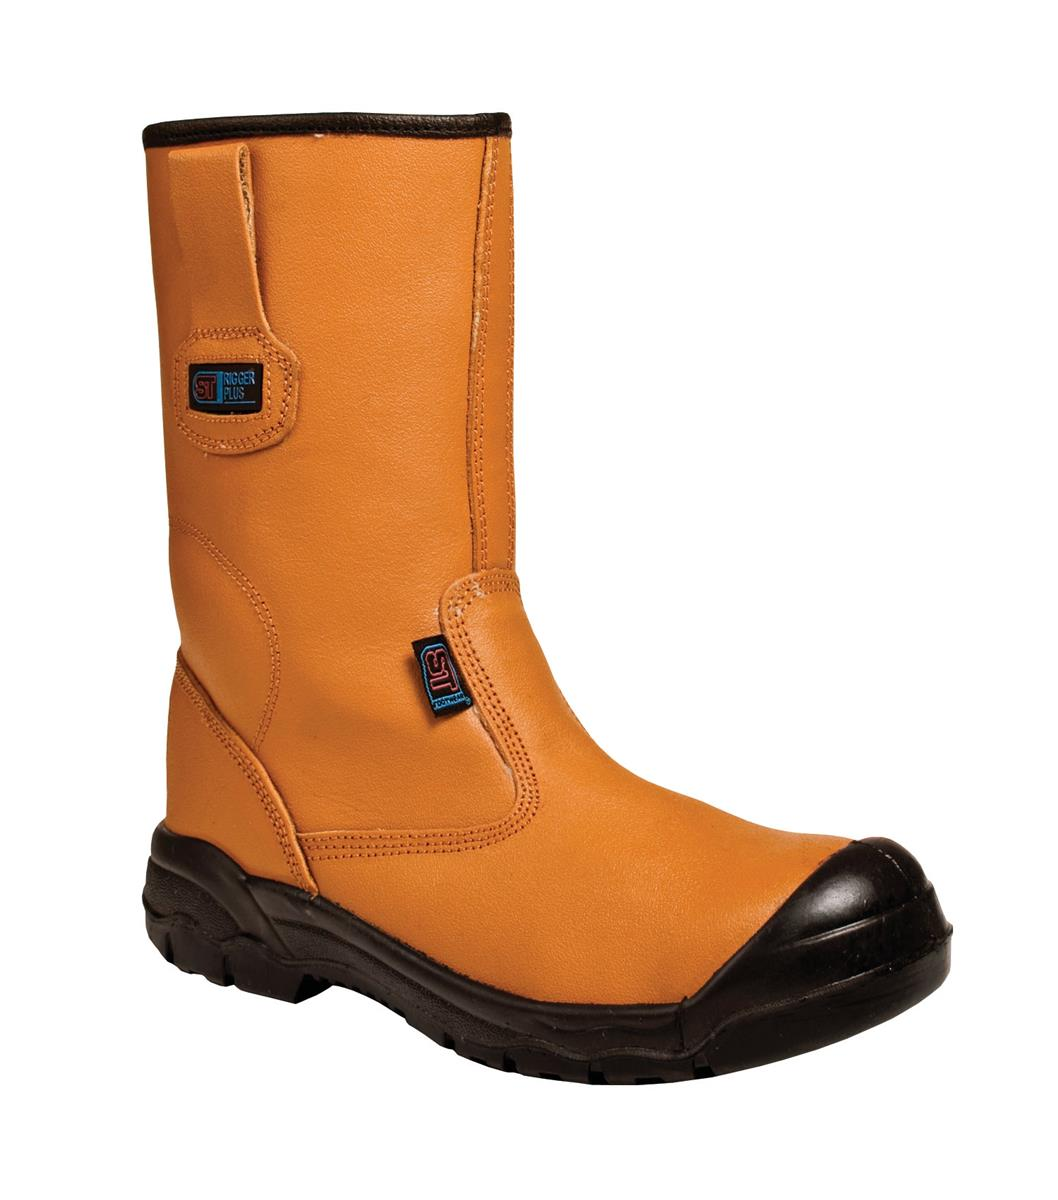 Supertouch Rigger Boot Plus Leather with Rubber Toecap Size 9 Tan Ref 90514 *Approx 3 Day Leadtime*